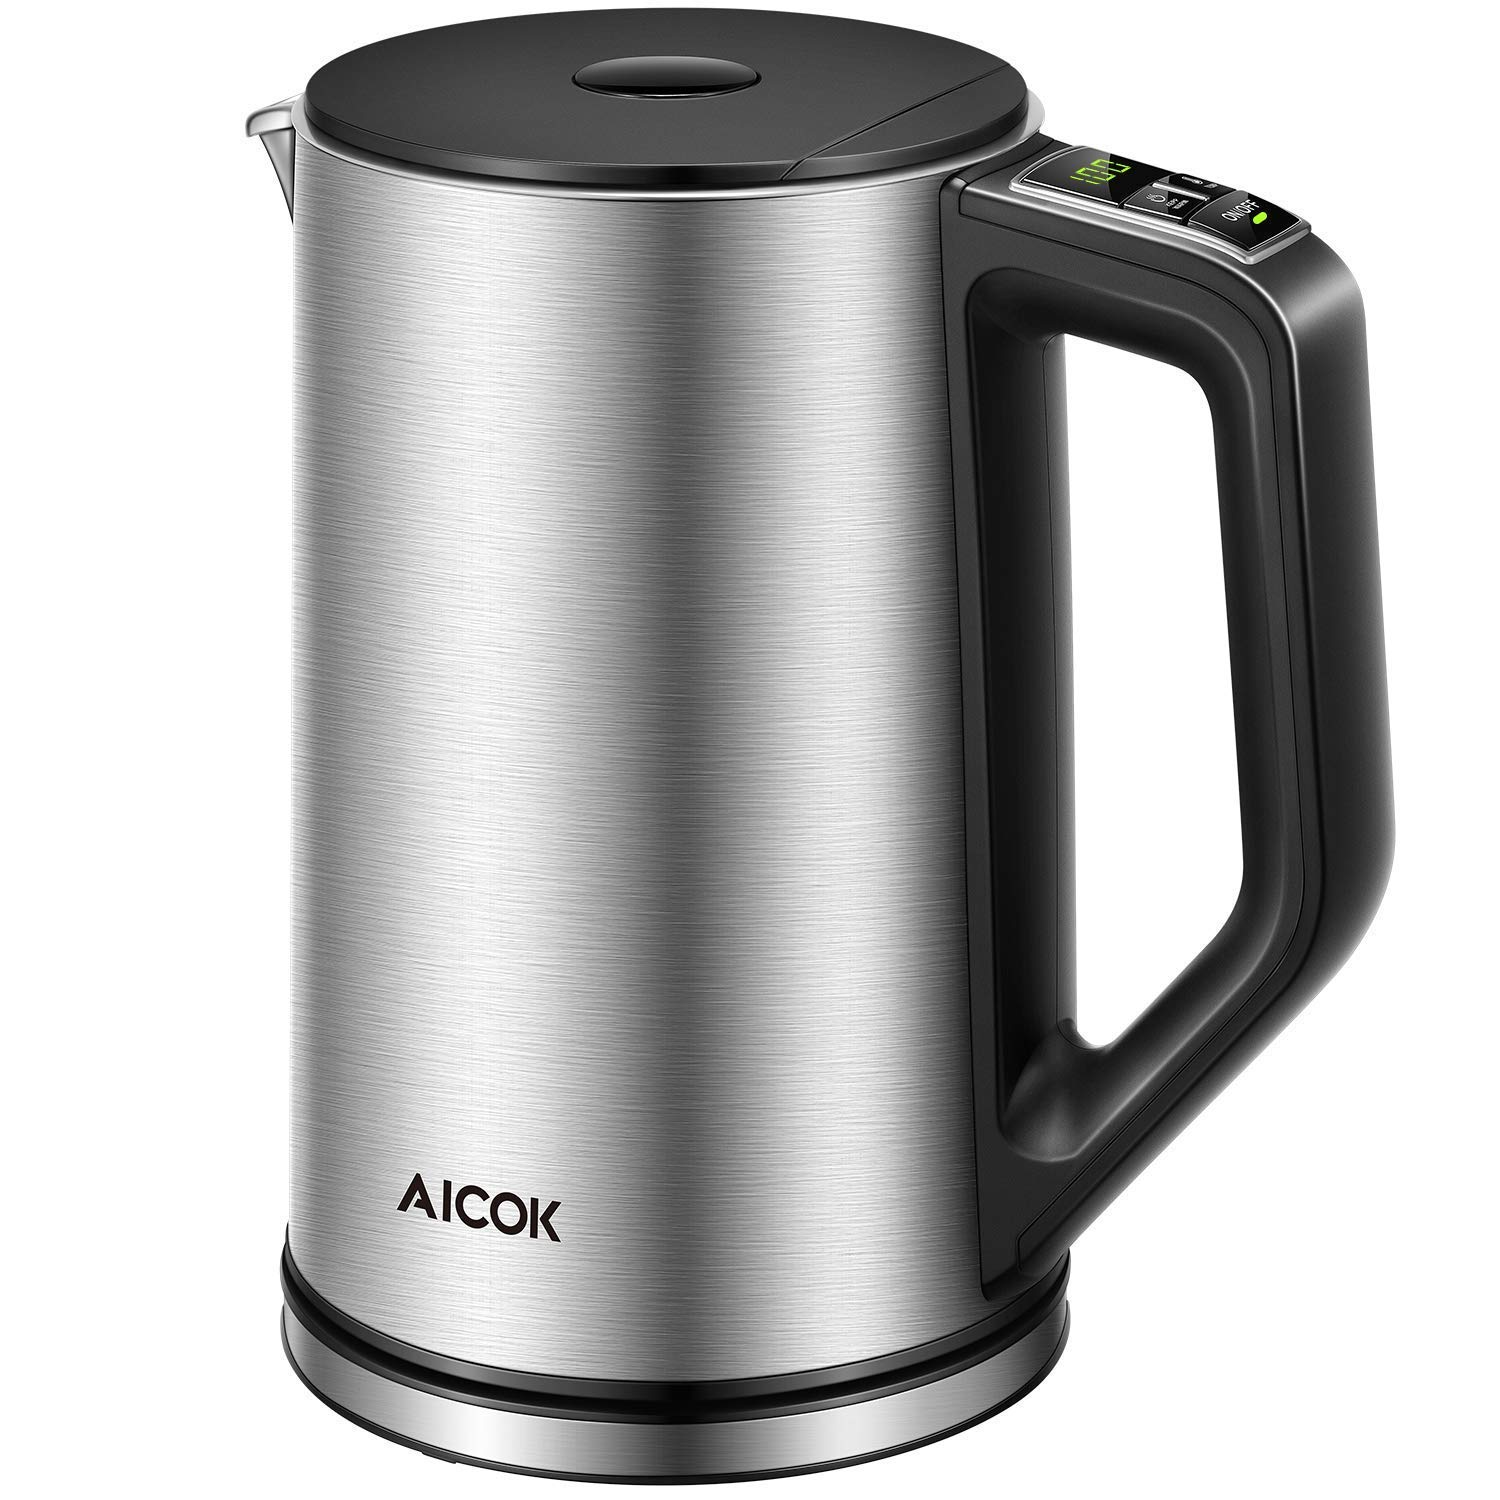 Aicok Electric Kettle Temperature Control, Double Wall Cool Touch Stainless Steel Kettle with LED Display from 35°- 100℃ |BPA-Free| Quick Boil |Keep Warm| Strix Control | (1.5 L, 2200 W)